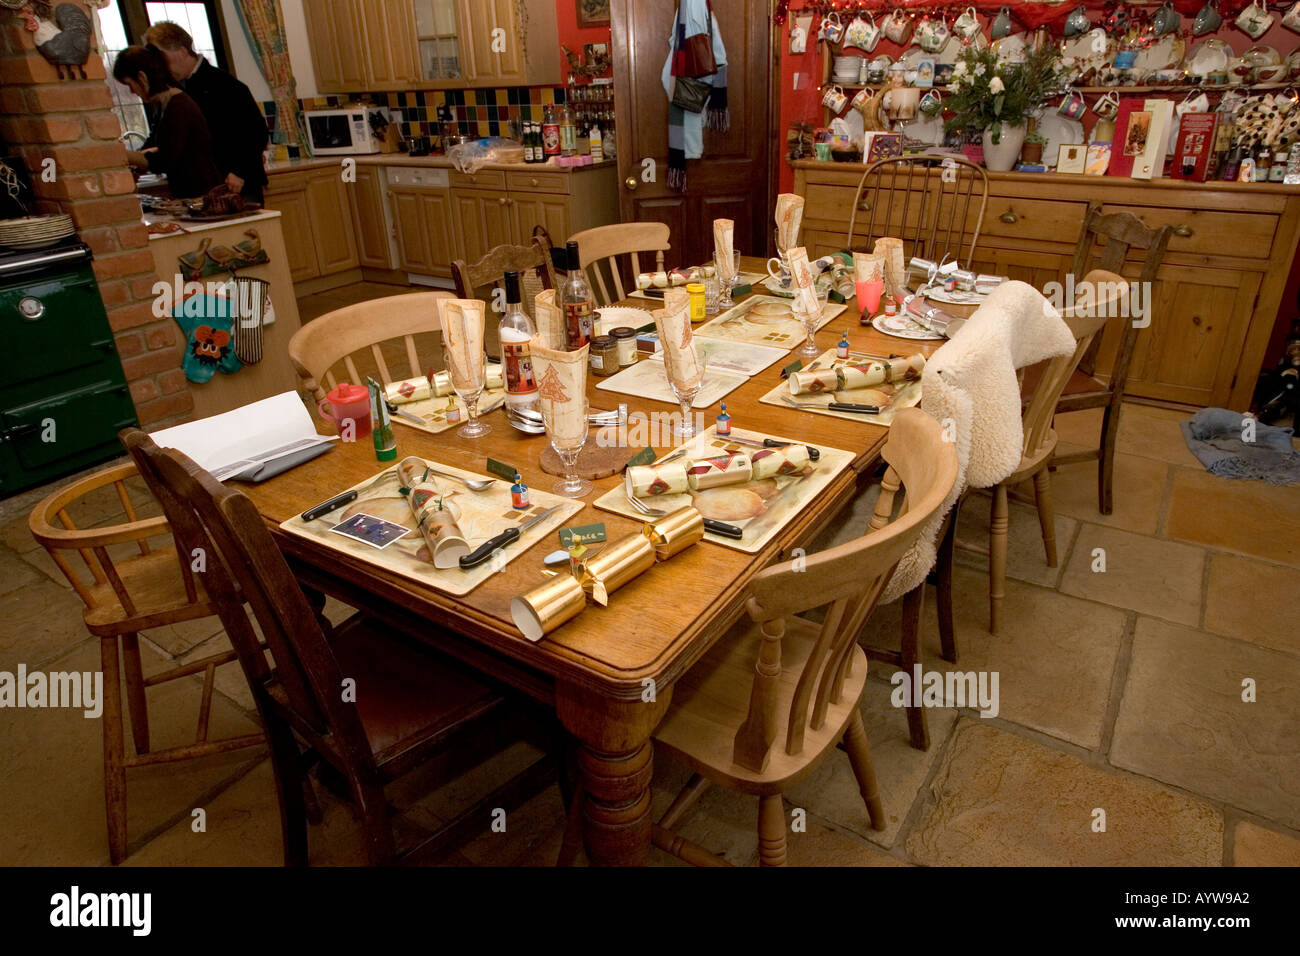 Farmhouse Kitchen Tables Uk Table Set For Christmas Lunch Farmhouse Kitchen Cotswolds Uk Stock